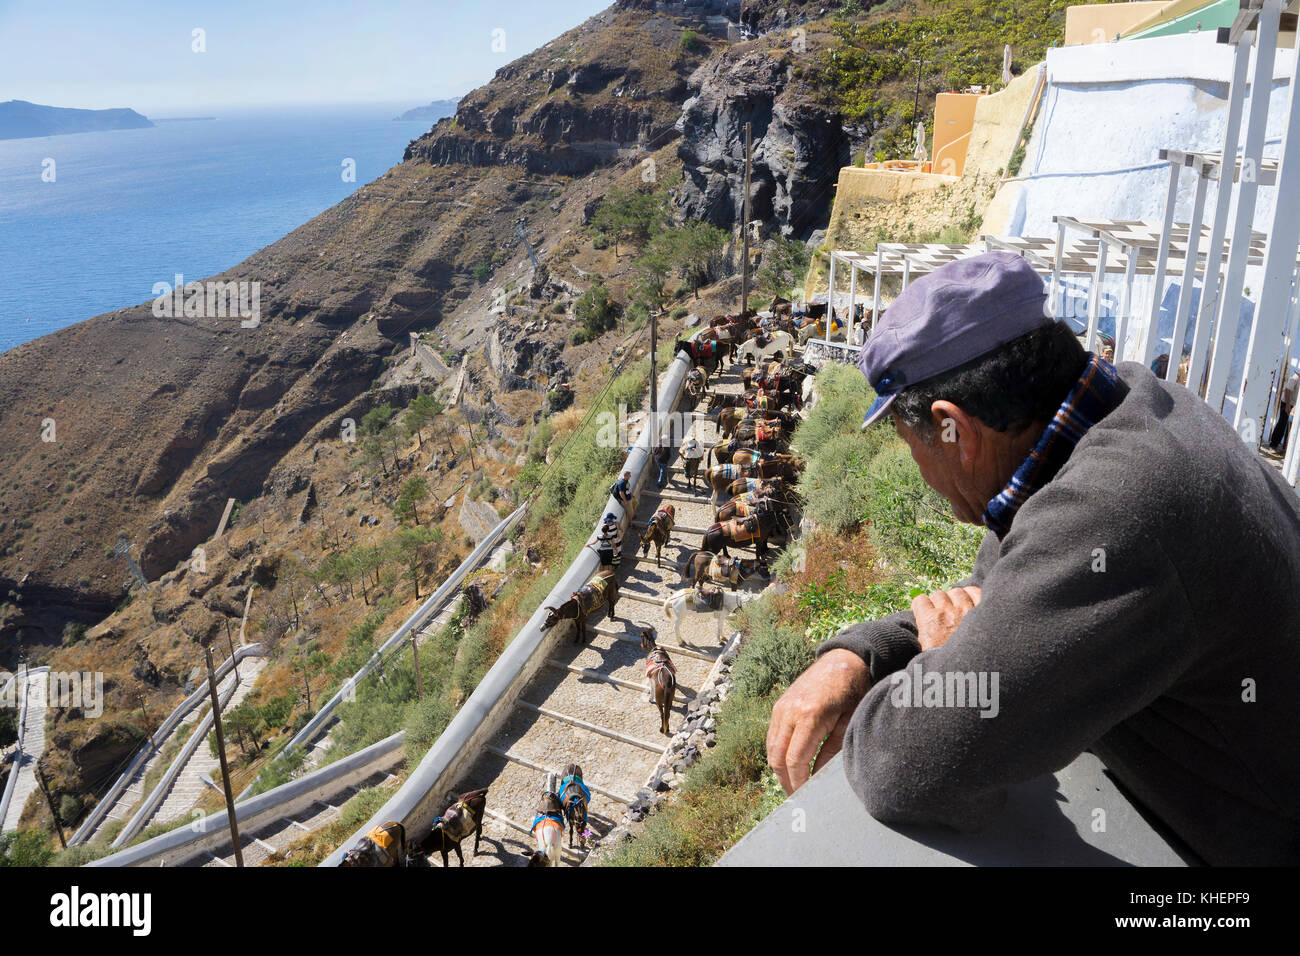 Greek watching donkeys at the stairway down from Thira to the old harbour, Thira, Santorin island, Cyclades, Aegean, - Stock Image